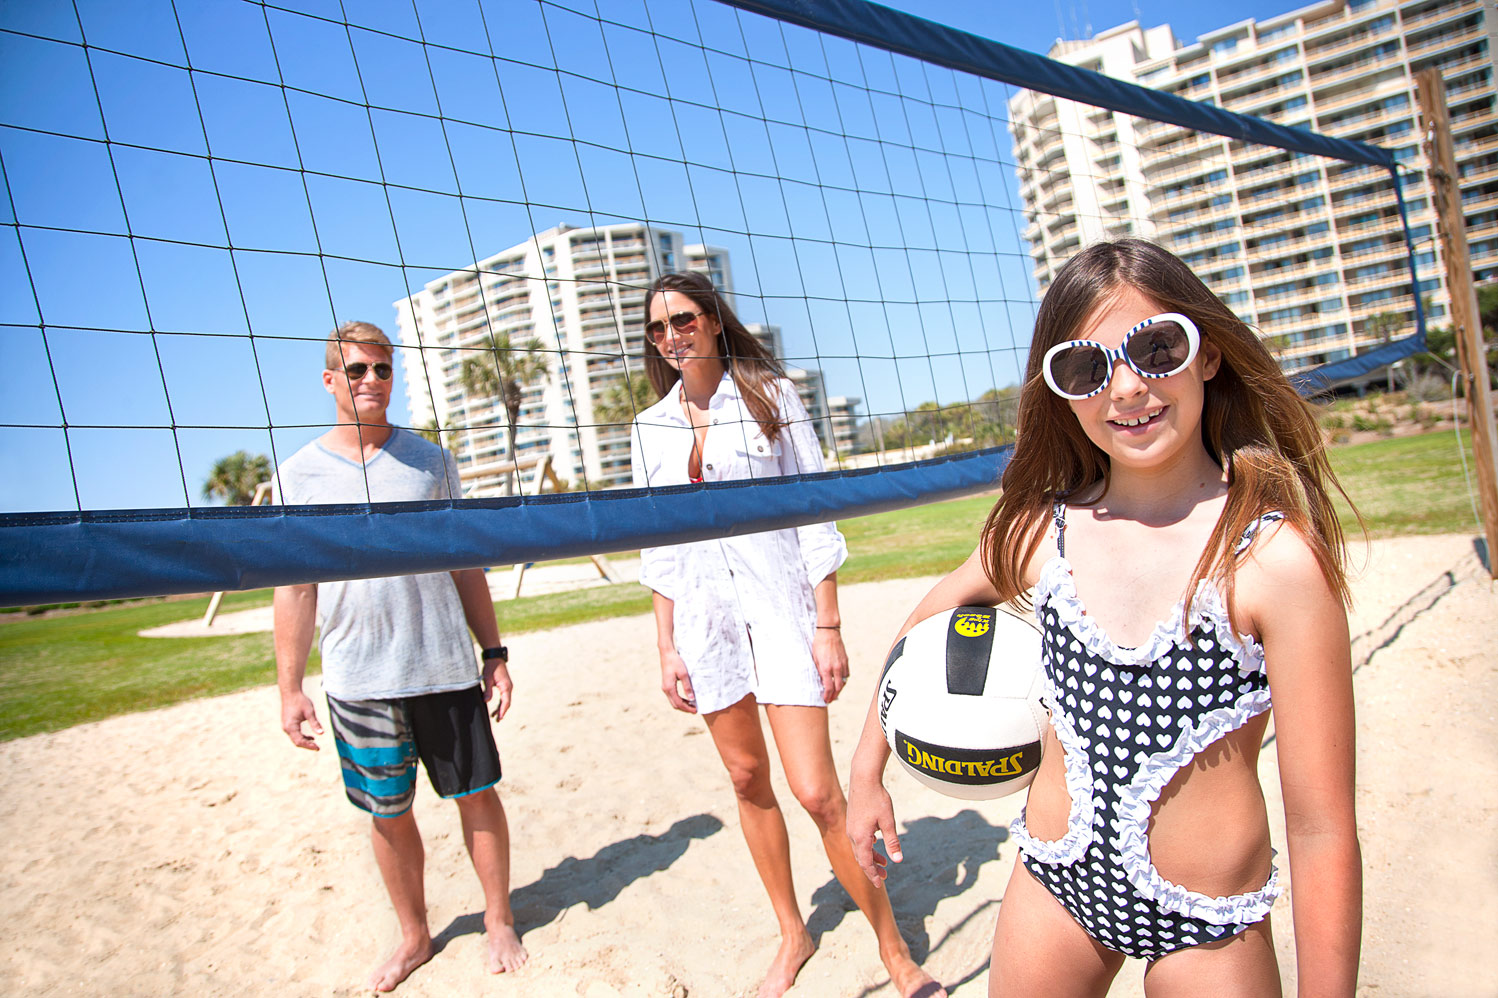 Enjoy a game of beach volleyball with the family!